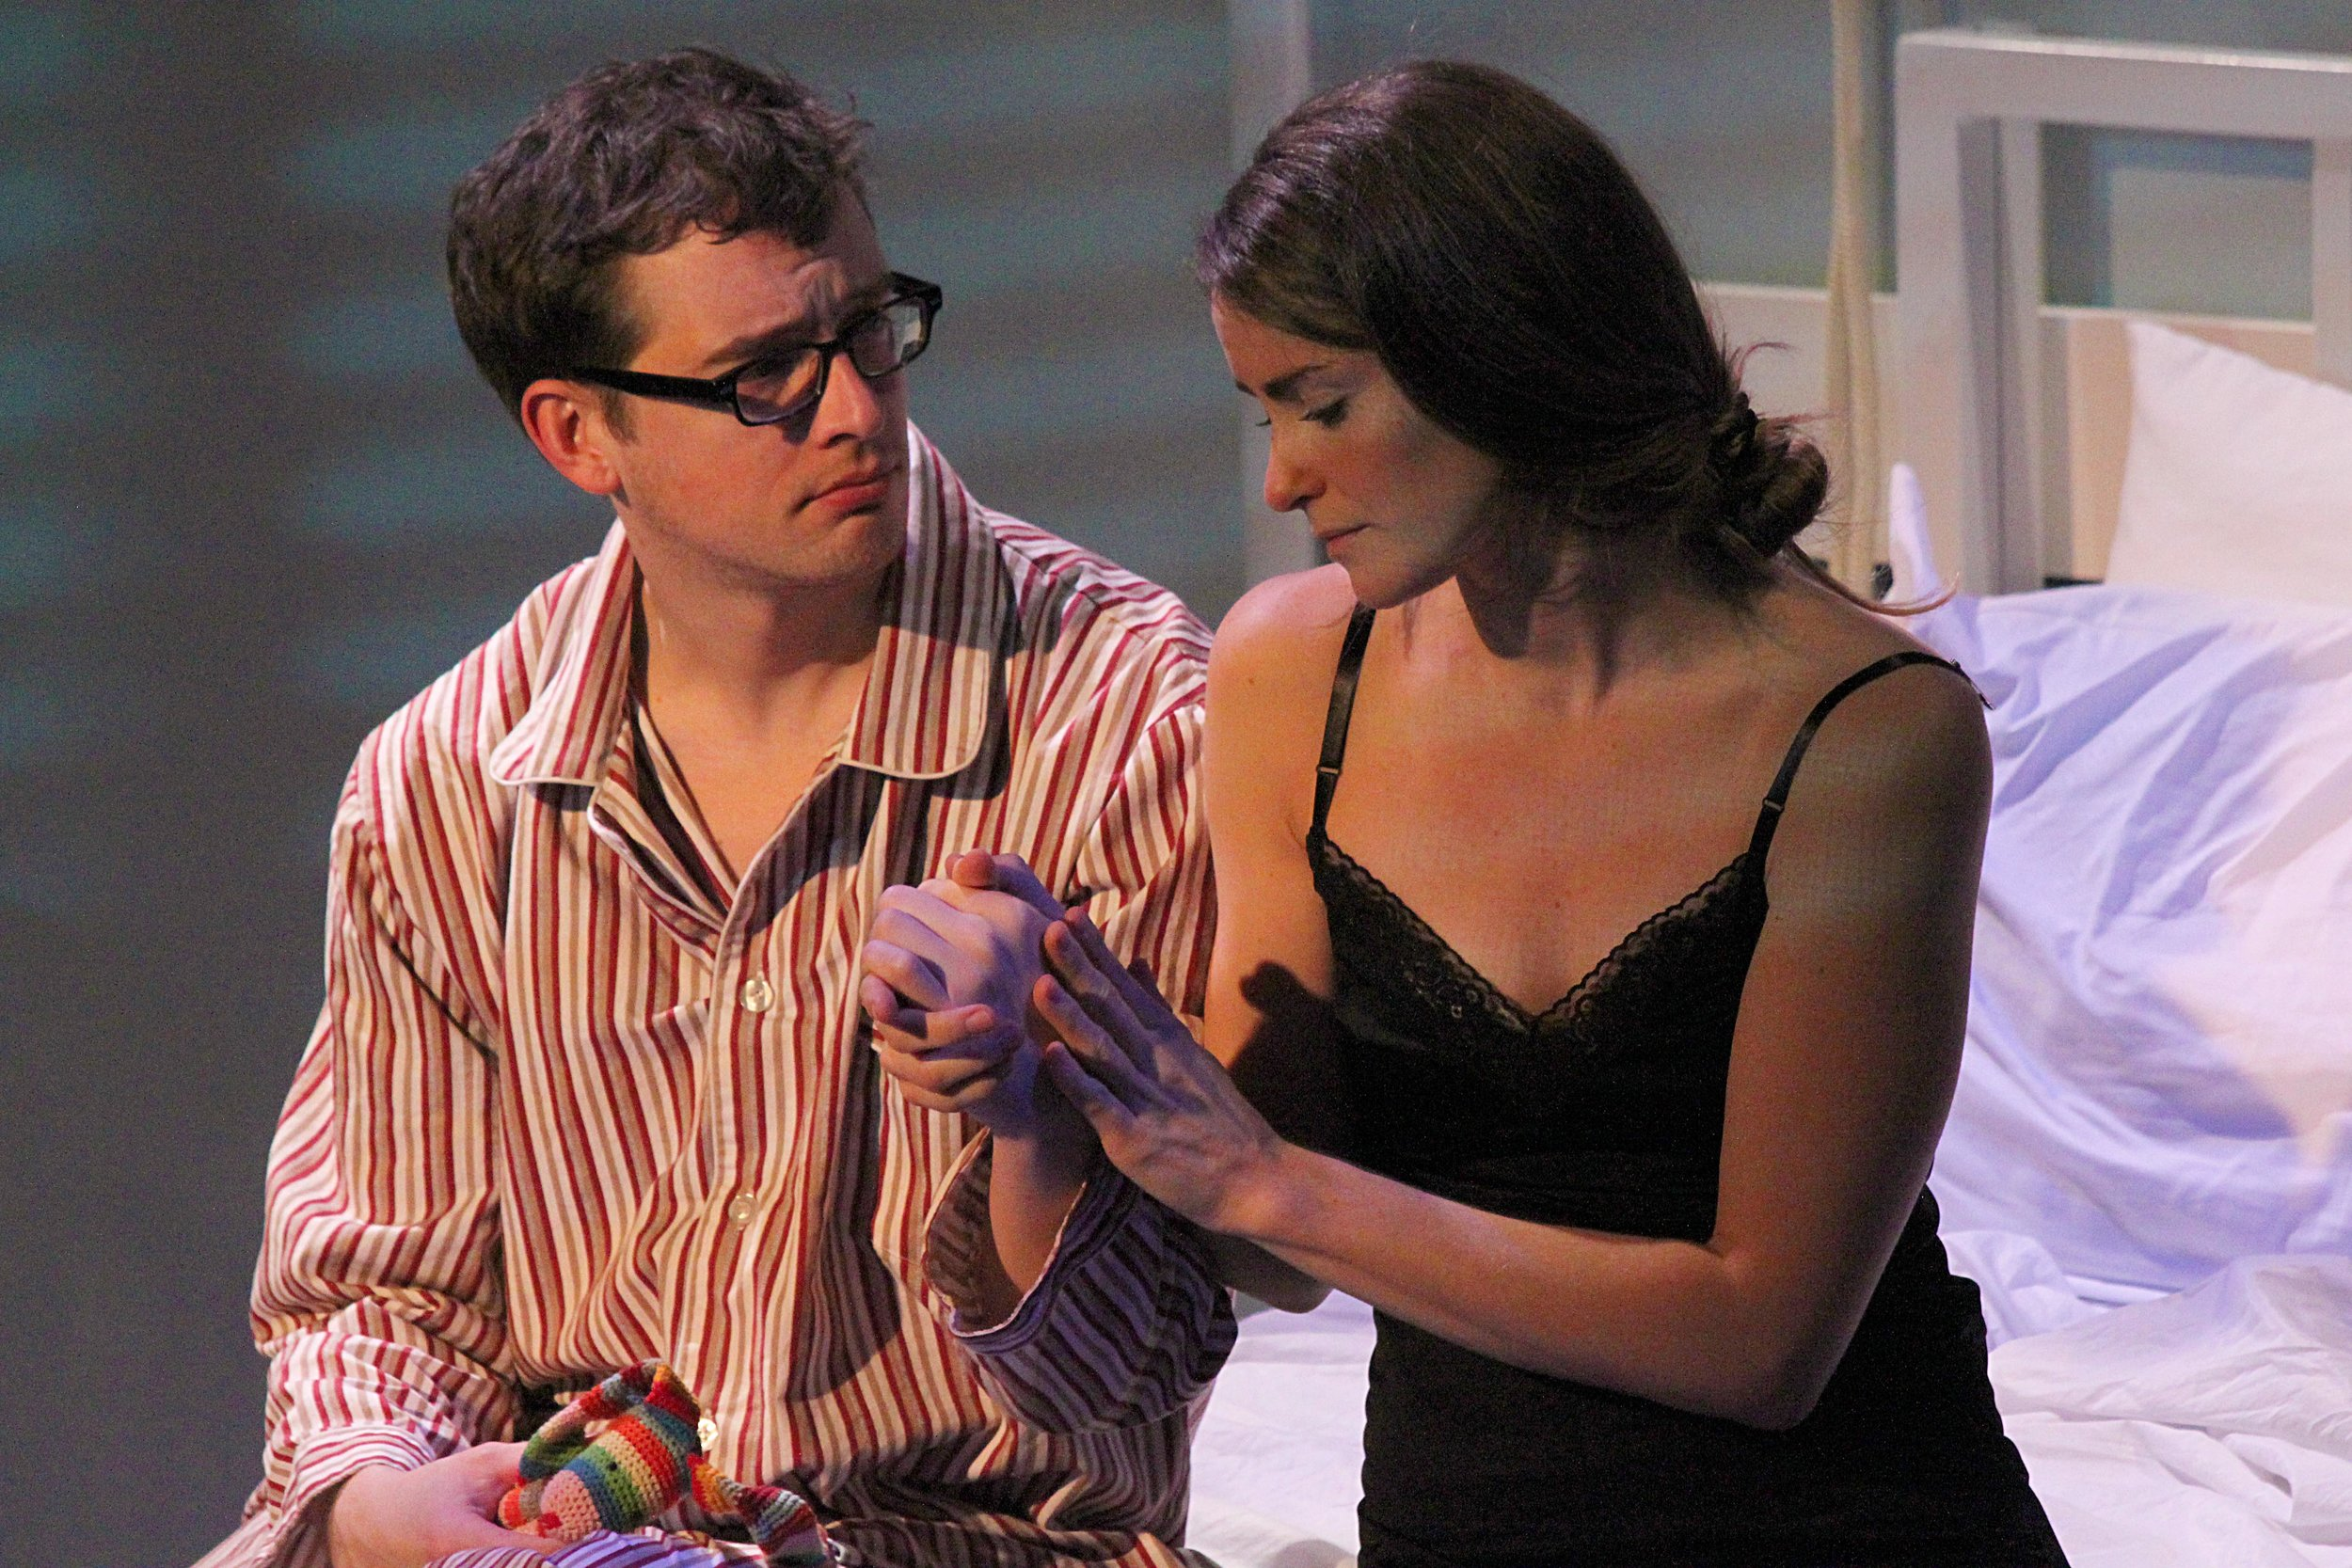 Adam Perabo and Kate Metroka as Carl and Anna in Paula Vogel's play 'The Baltimore Waltz.' Photo: Jessie Dobrzynski